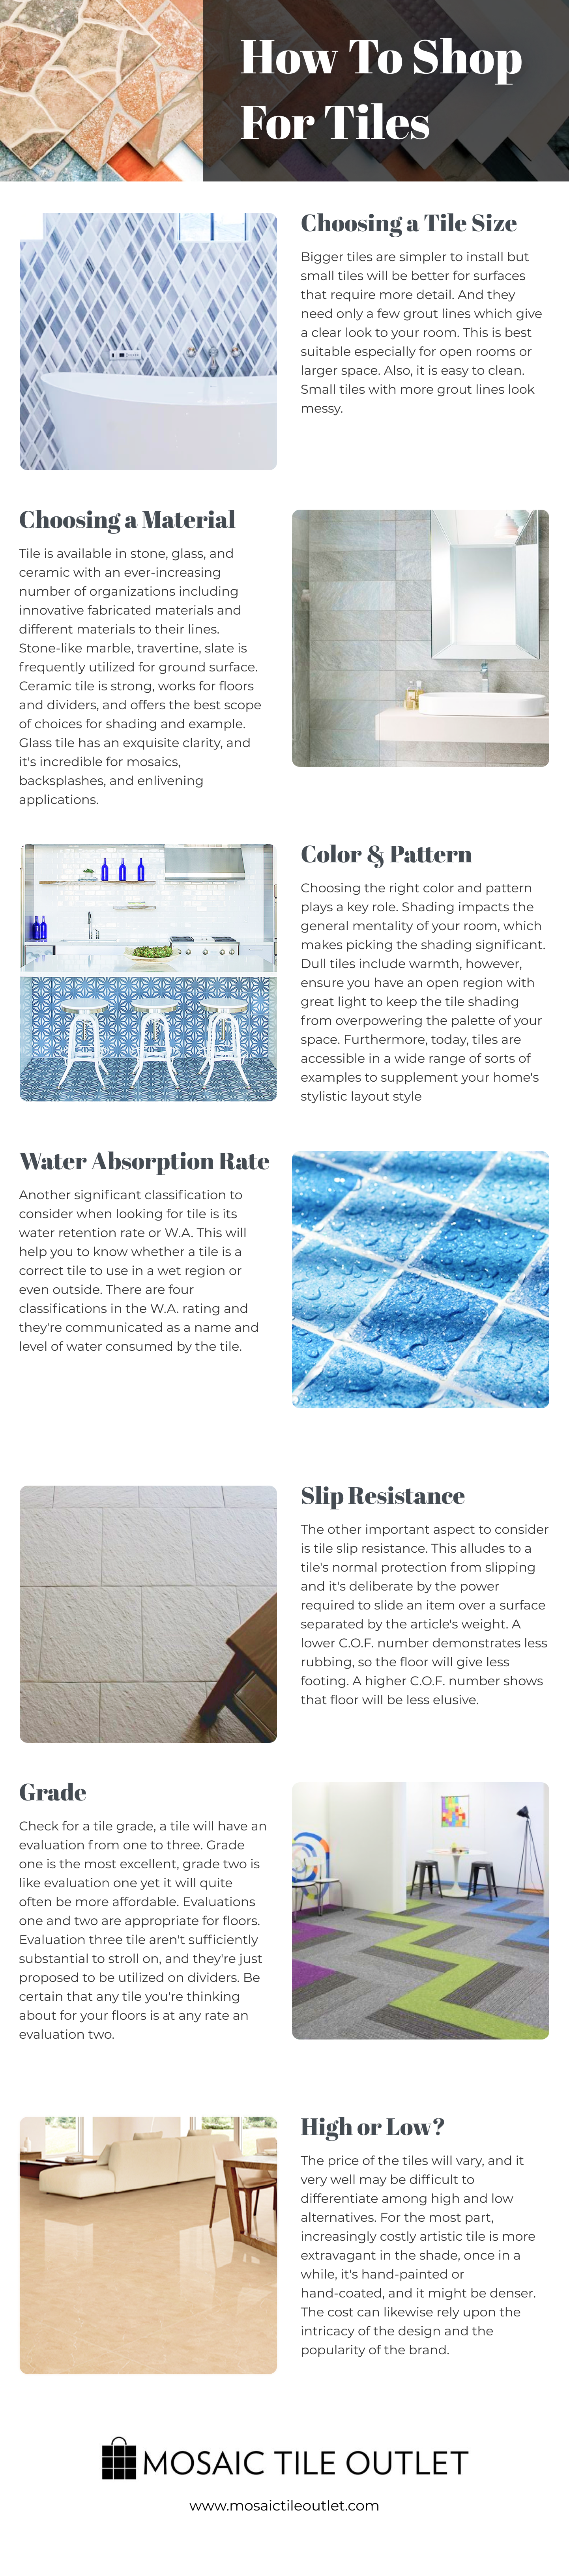 how to shop for tiles infographic